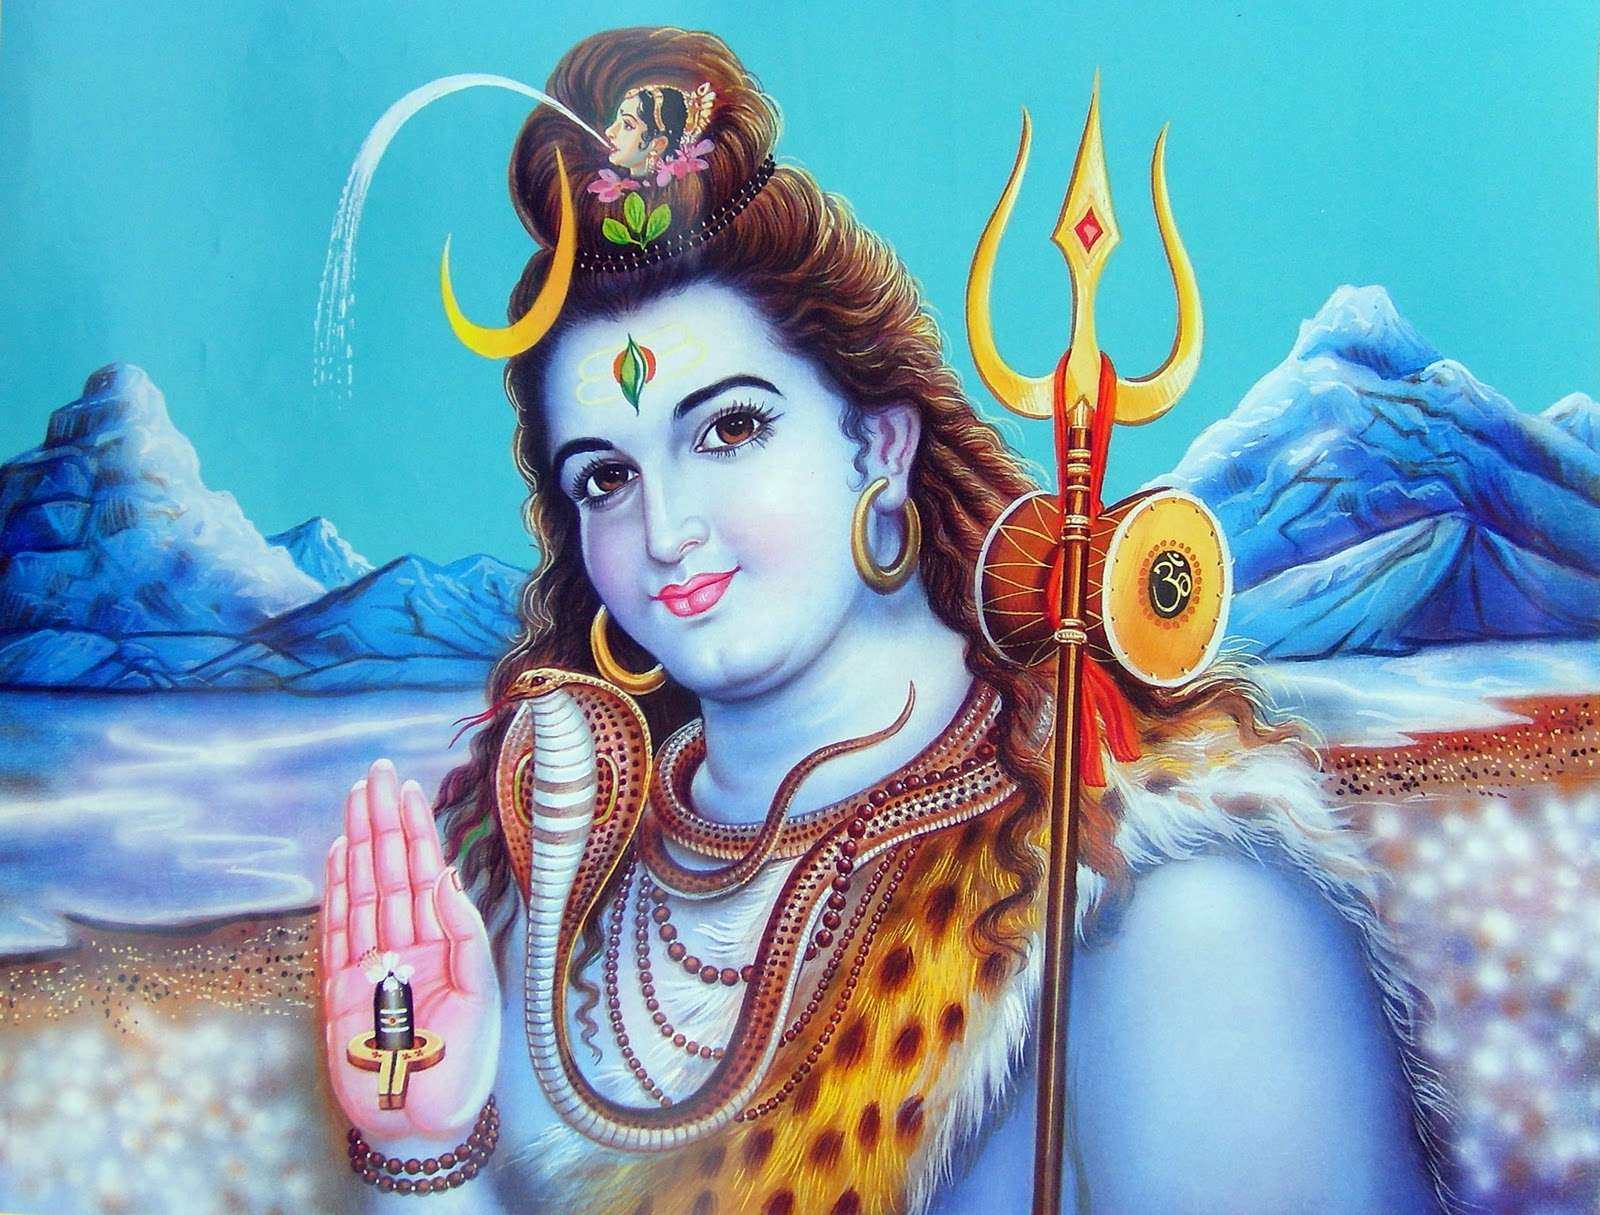 lord shiva wallpapers hd free download for desktop fine hd wallpapers   download free hd